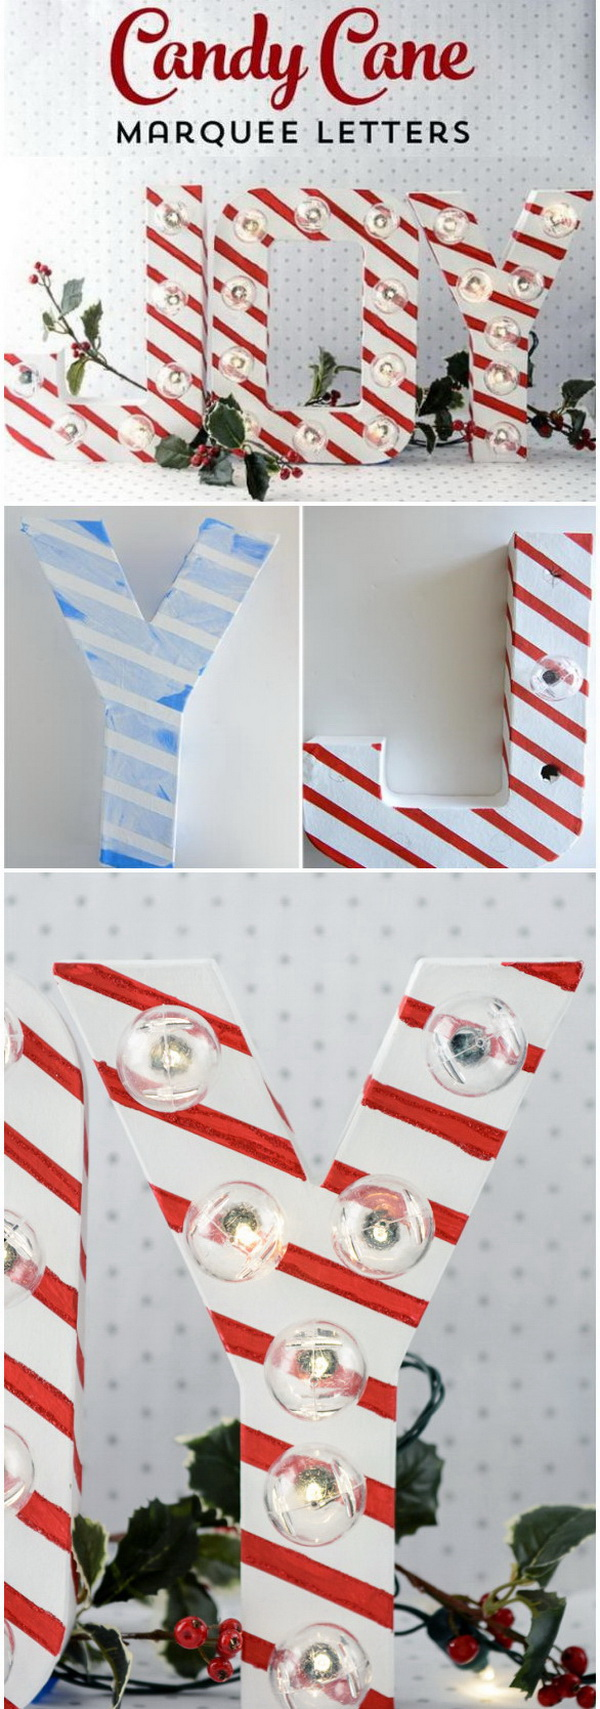 Candy Cane Christmas Marquee Letters. Marquee letters always make great DIY project for the holiday decoration. The candy cane stripes made with painters tape adds more festive flair to Christmas crafts and decorating.